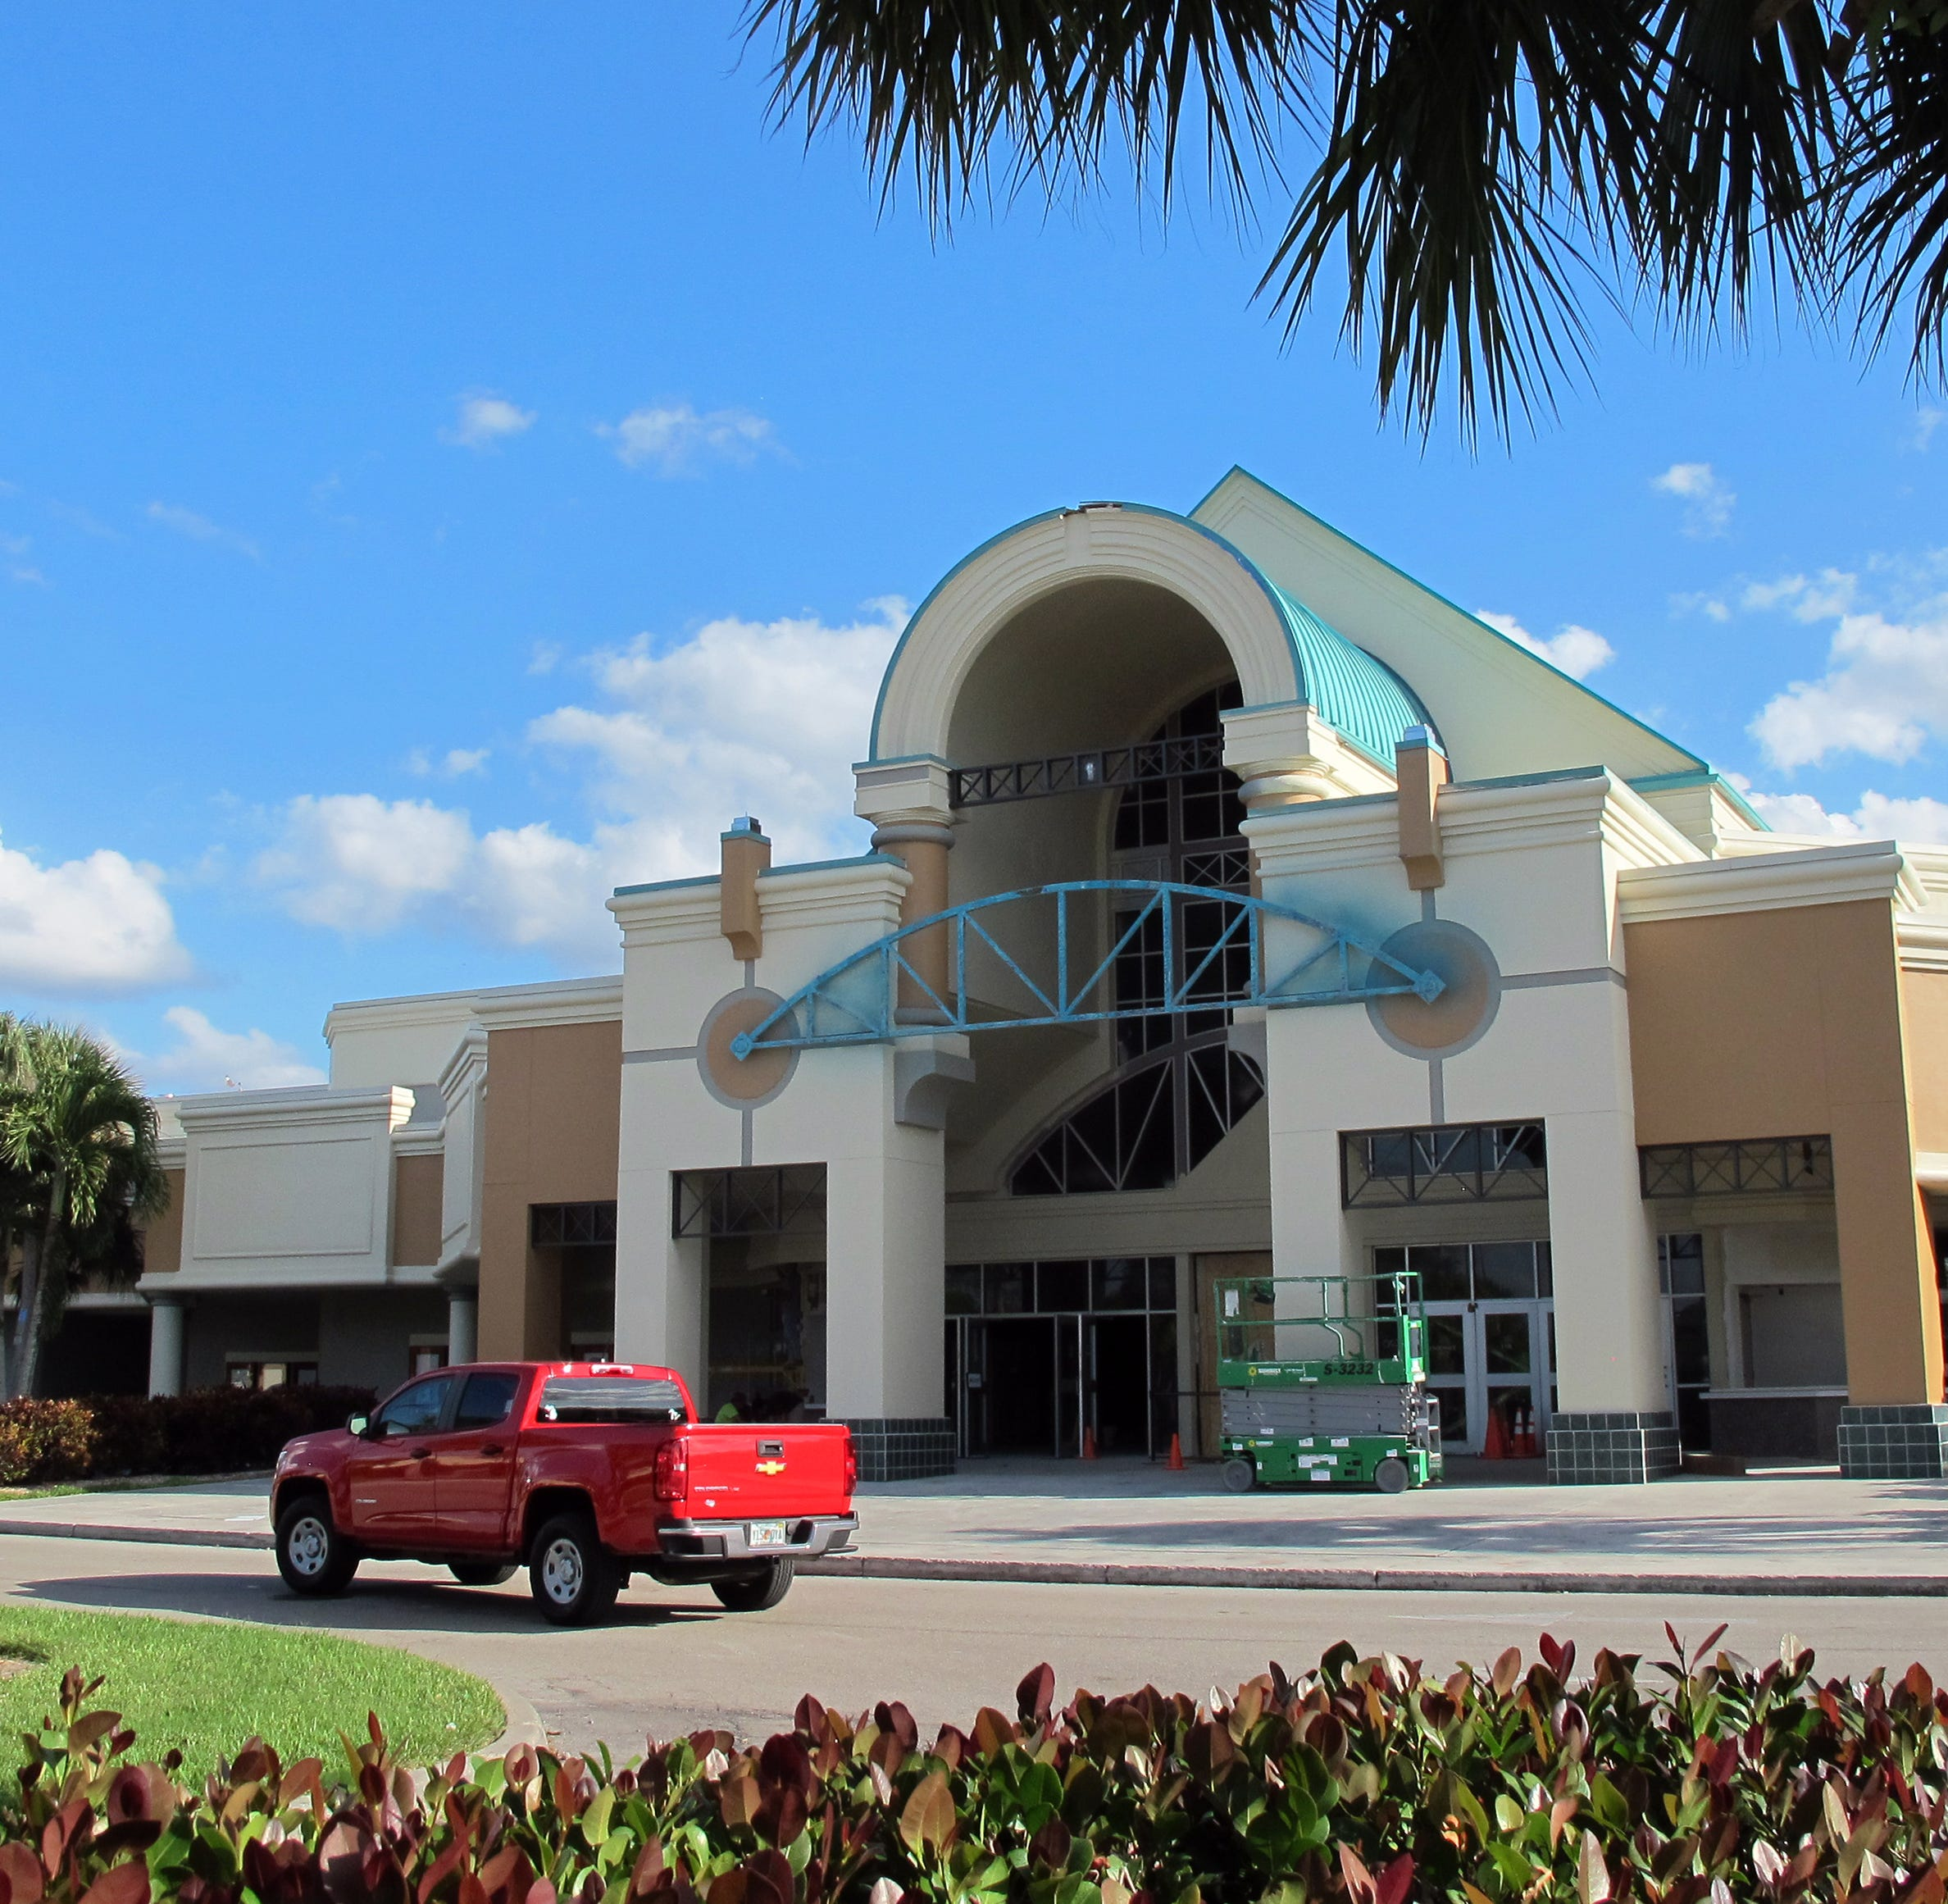 In the Know: Renovation work continues at Hollywood 20 cinema in North Naples